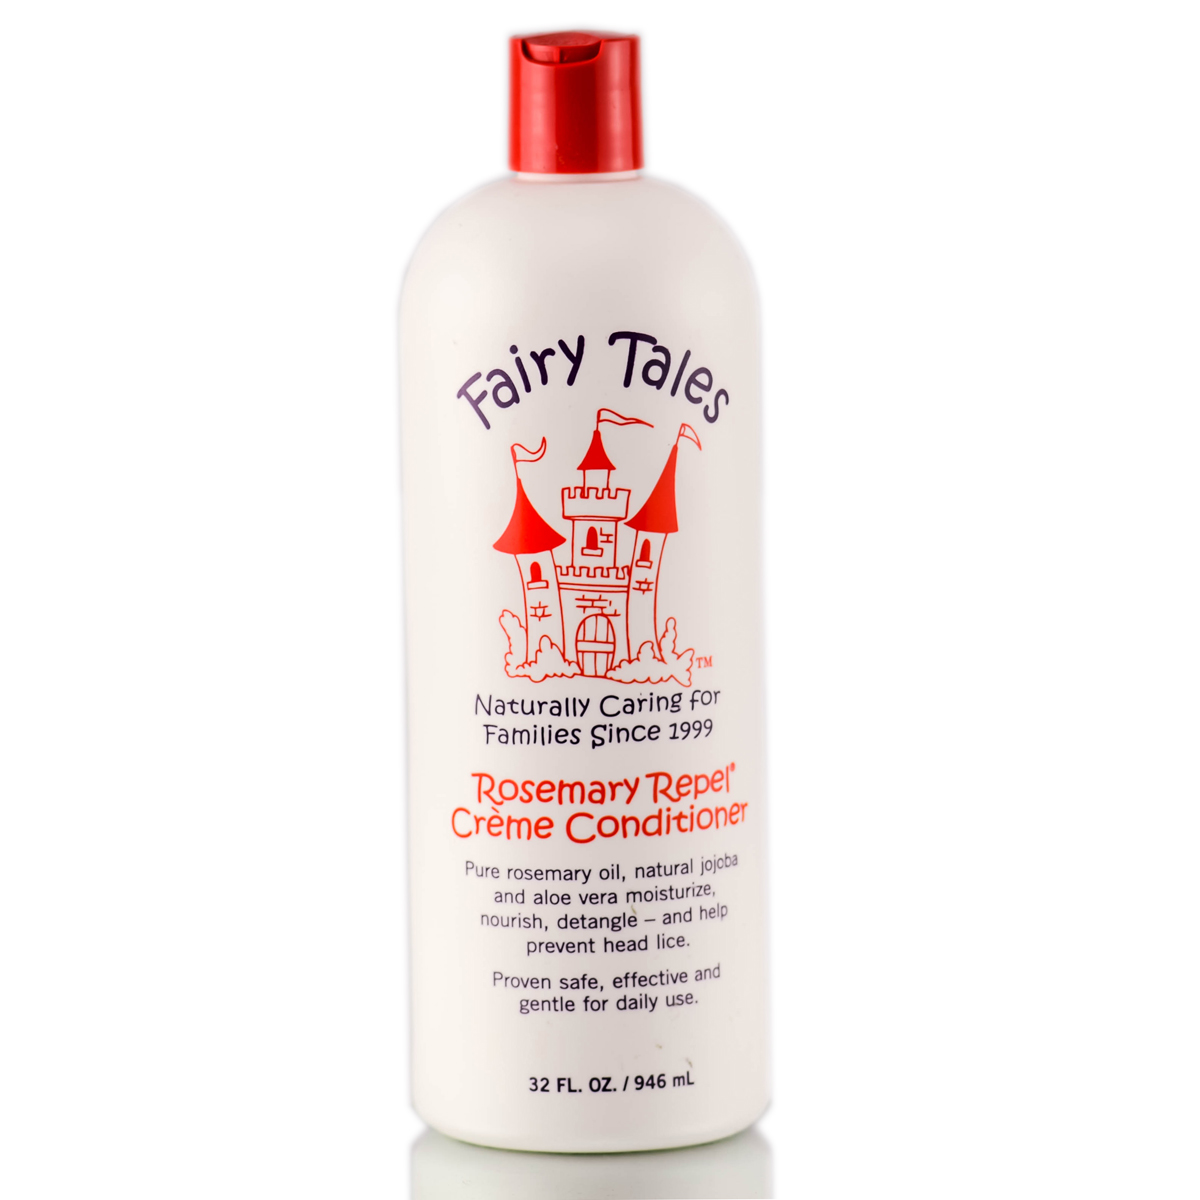 Fairy Tales Rosemary Repel Creme Conditioner 812729003756